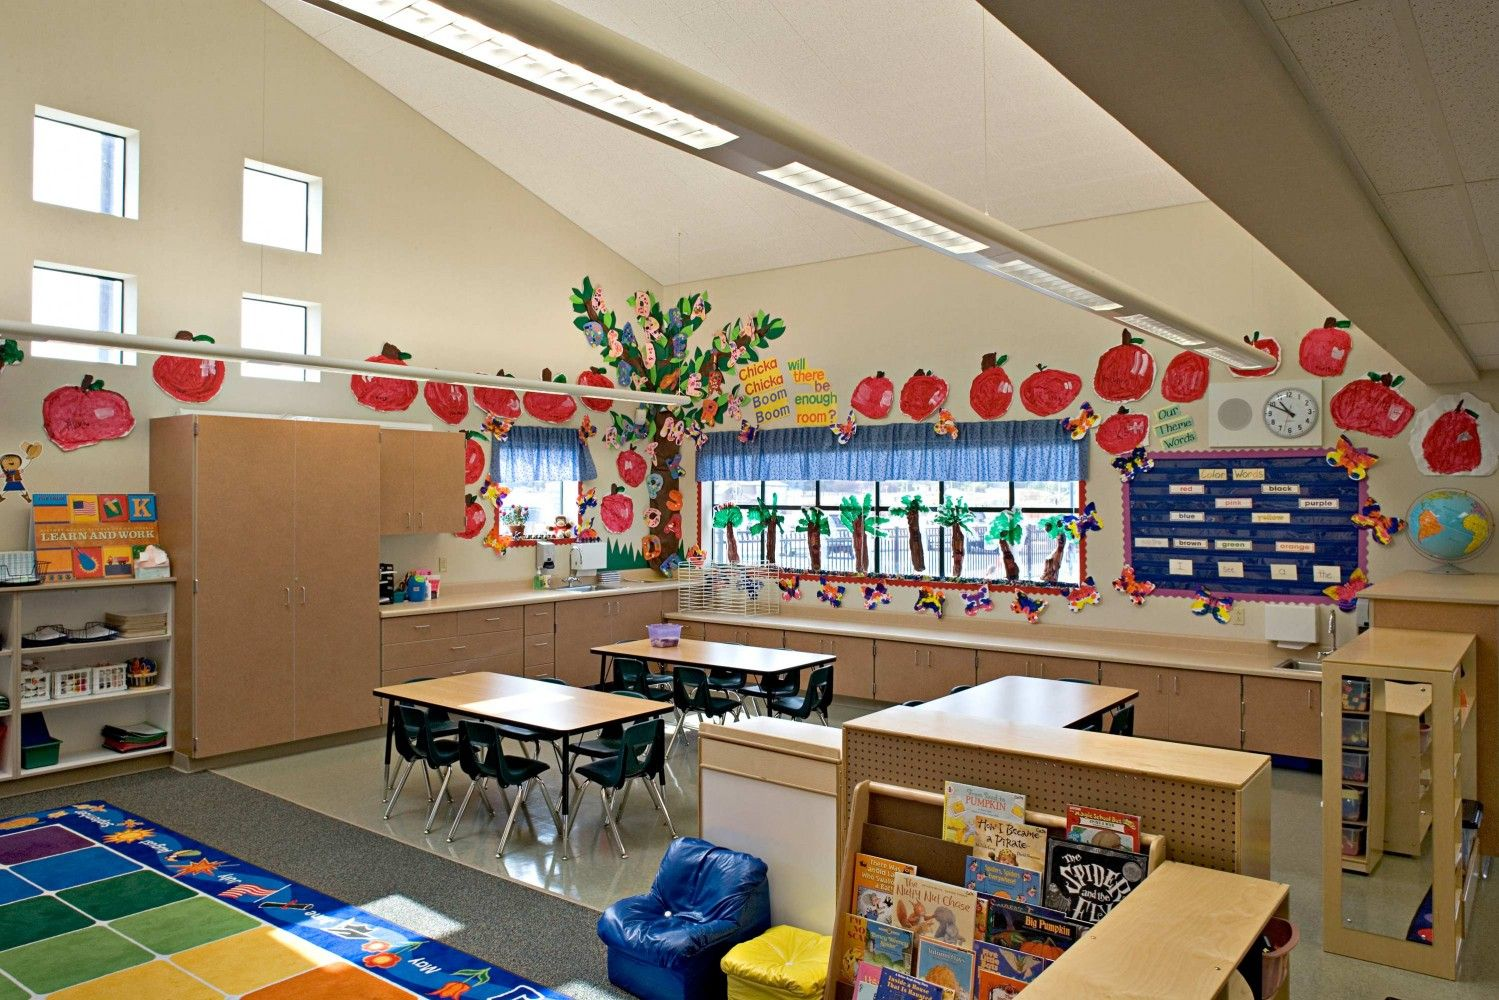 Design Ideas For Classroom : Elementary classroom design barrett ranch